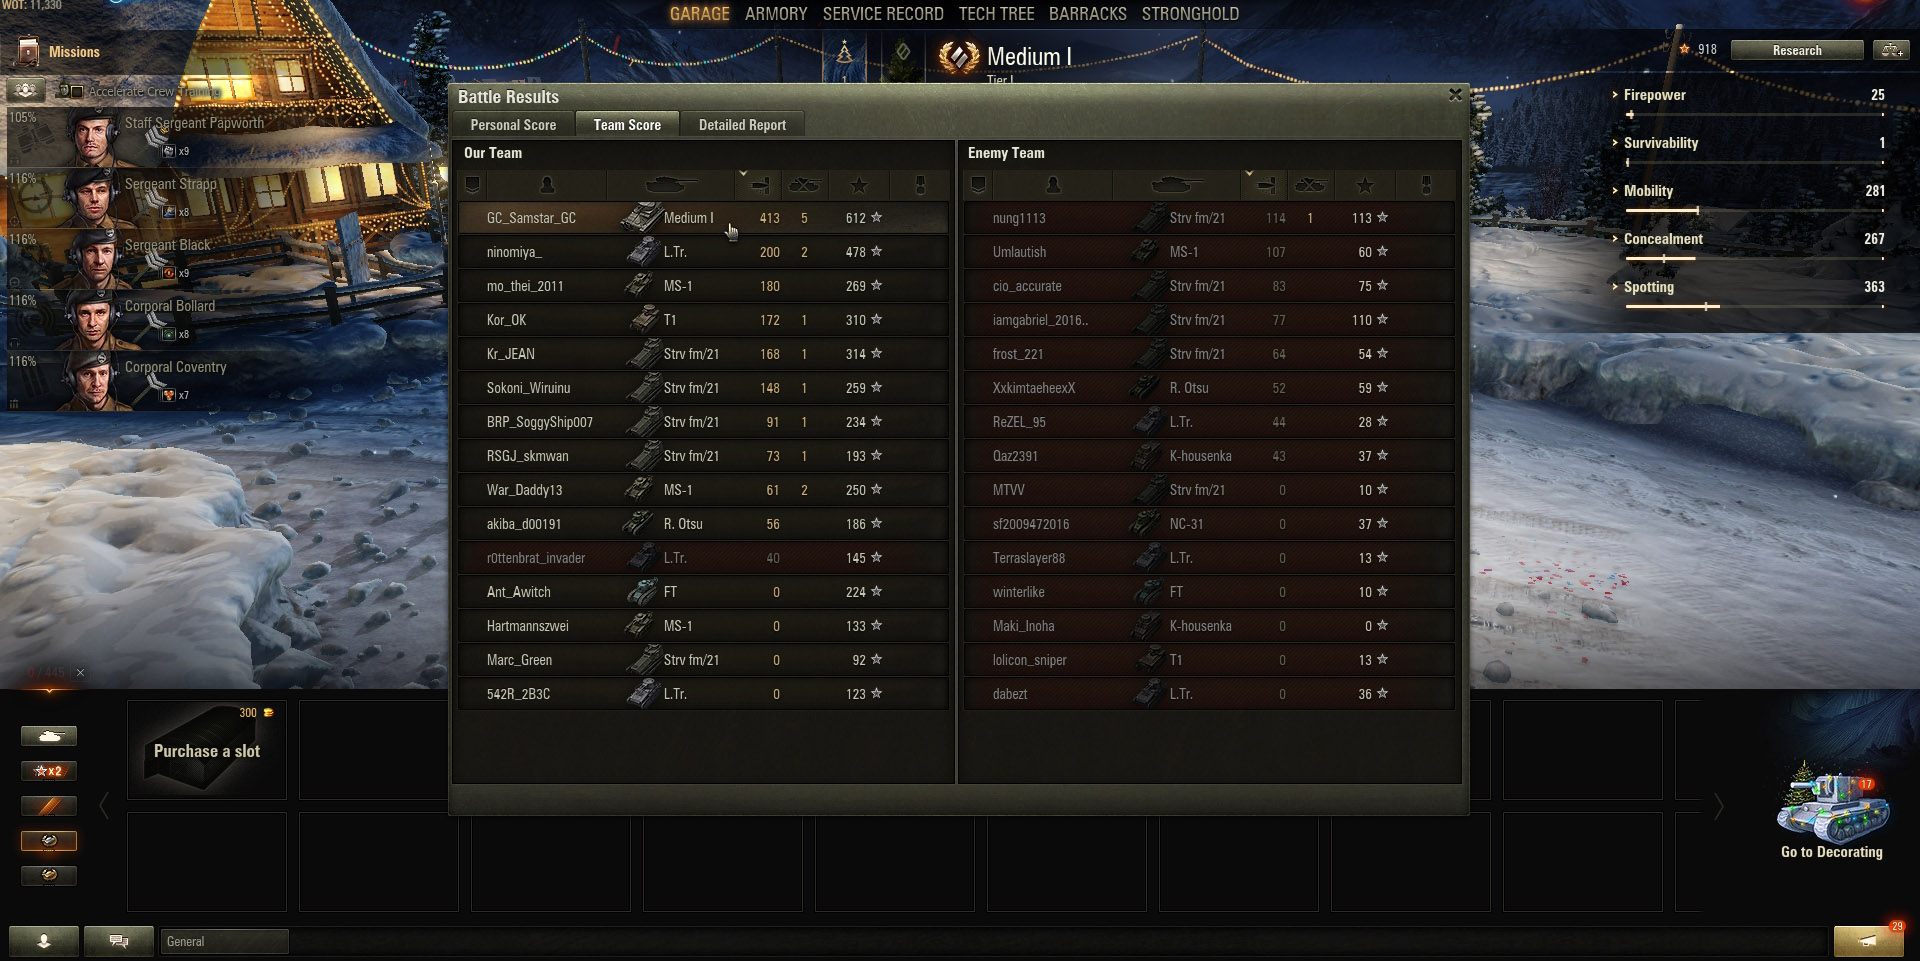 The amount of damage you need to deal is on a per-tank basis. While a Tier 1 tank won't be able to deal thousands of damage, dealing only 400 damage in a Tier 8 tank would be inexcusable. Help your team by firing on every tank you can see!